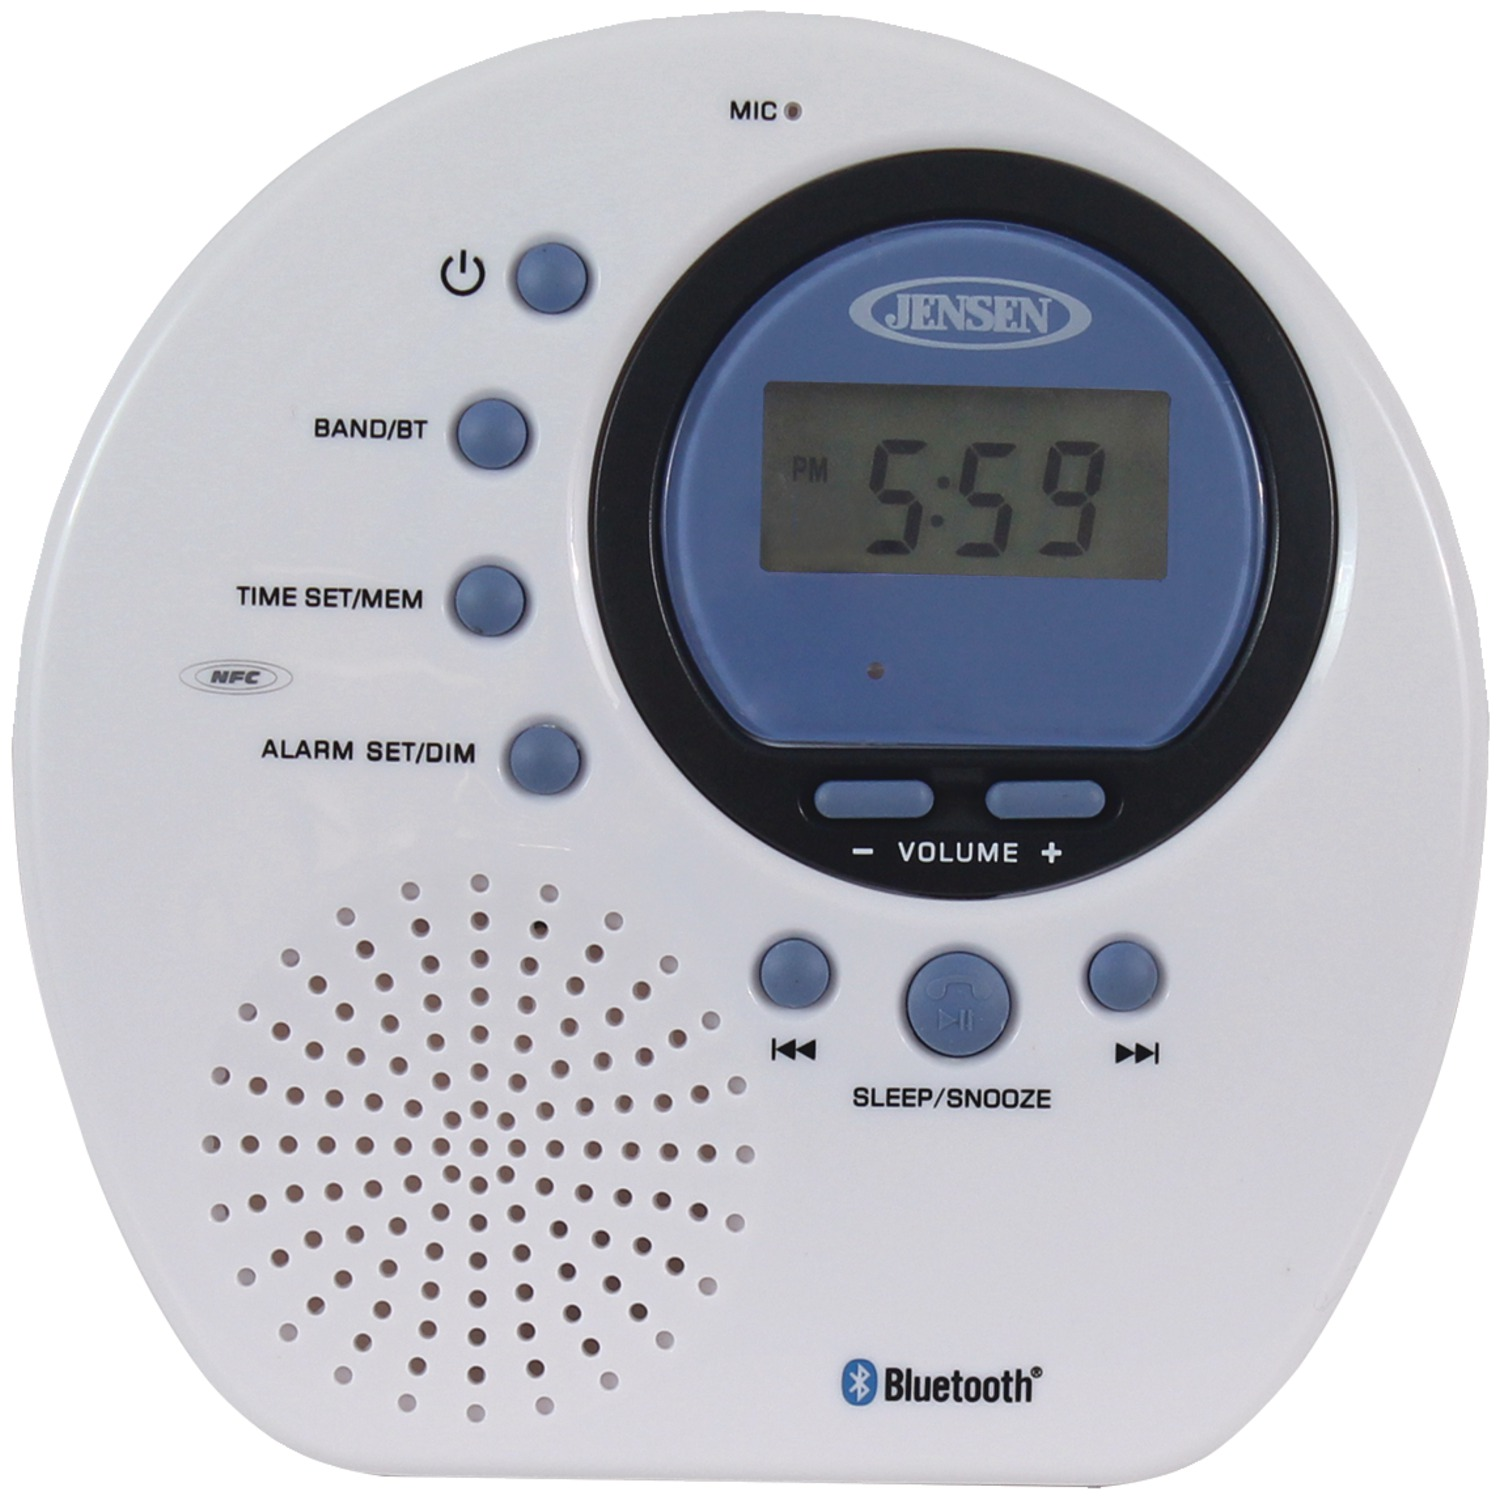 JENSEN JWM-160 Water-Resistant Digital AM/FM Bluetooth Shower Clock Radio